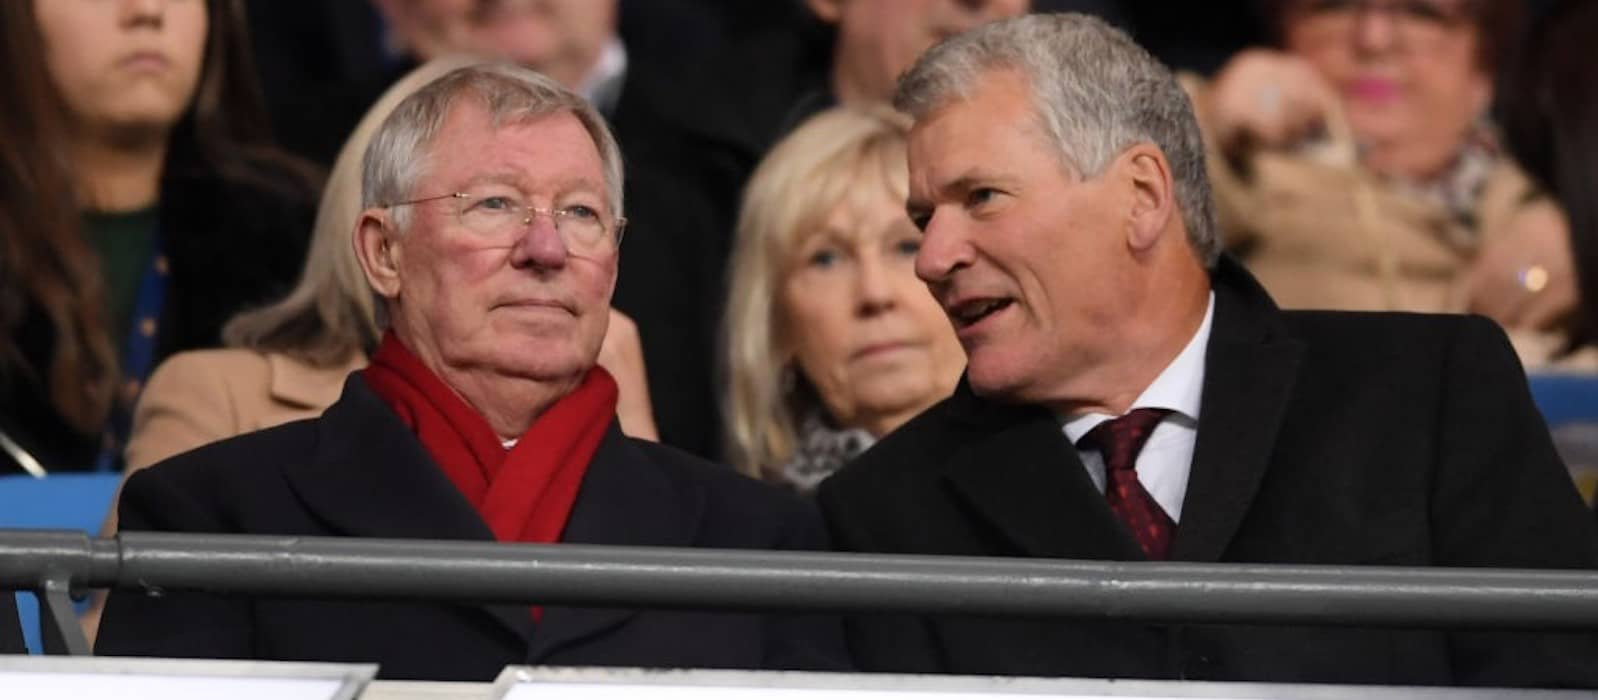 Photo: Sir Alex Ferguson beaming at Ole Gunnar Solskjaer after brilliant Manchester United win at the Etihad